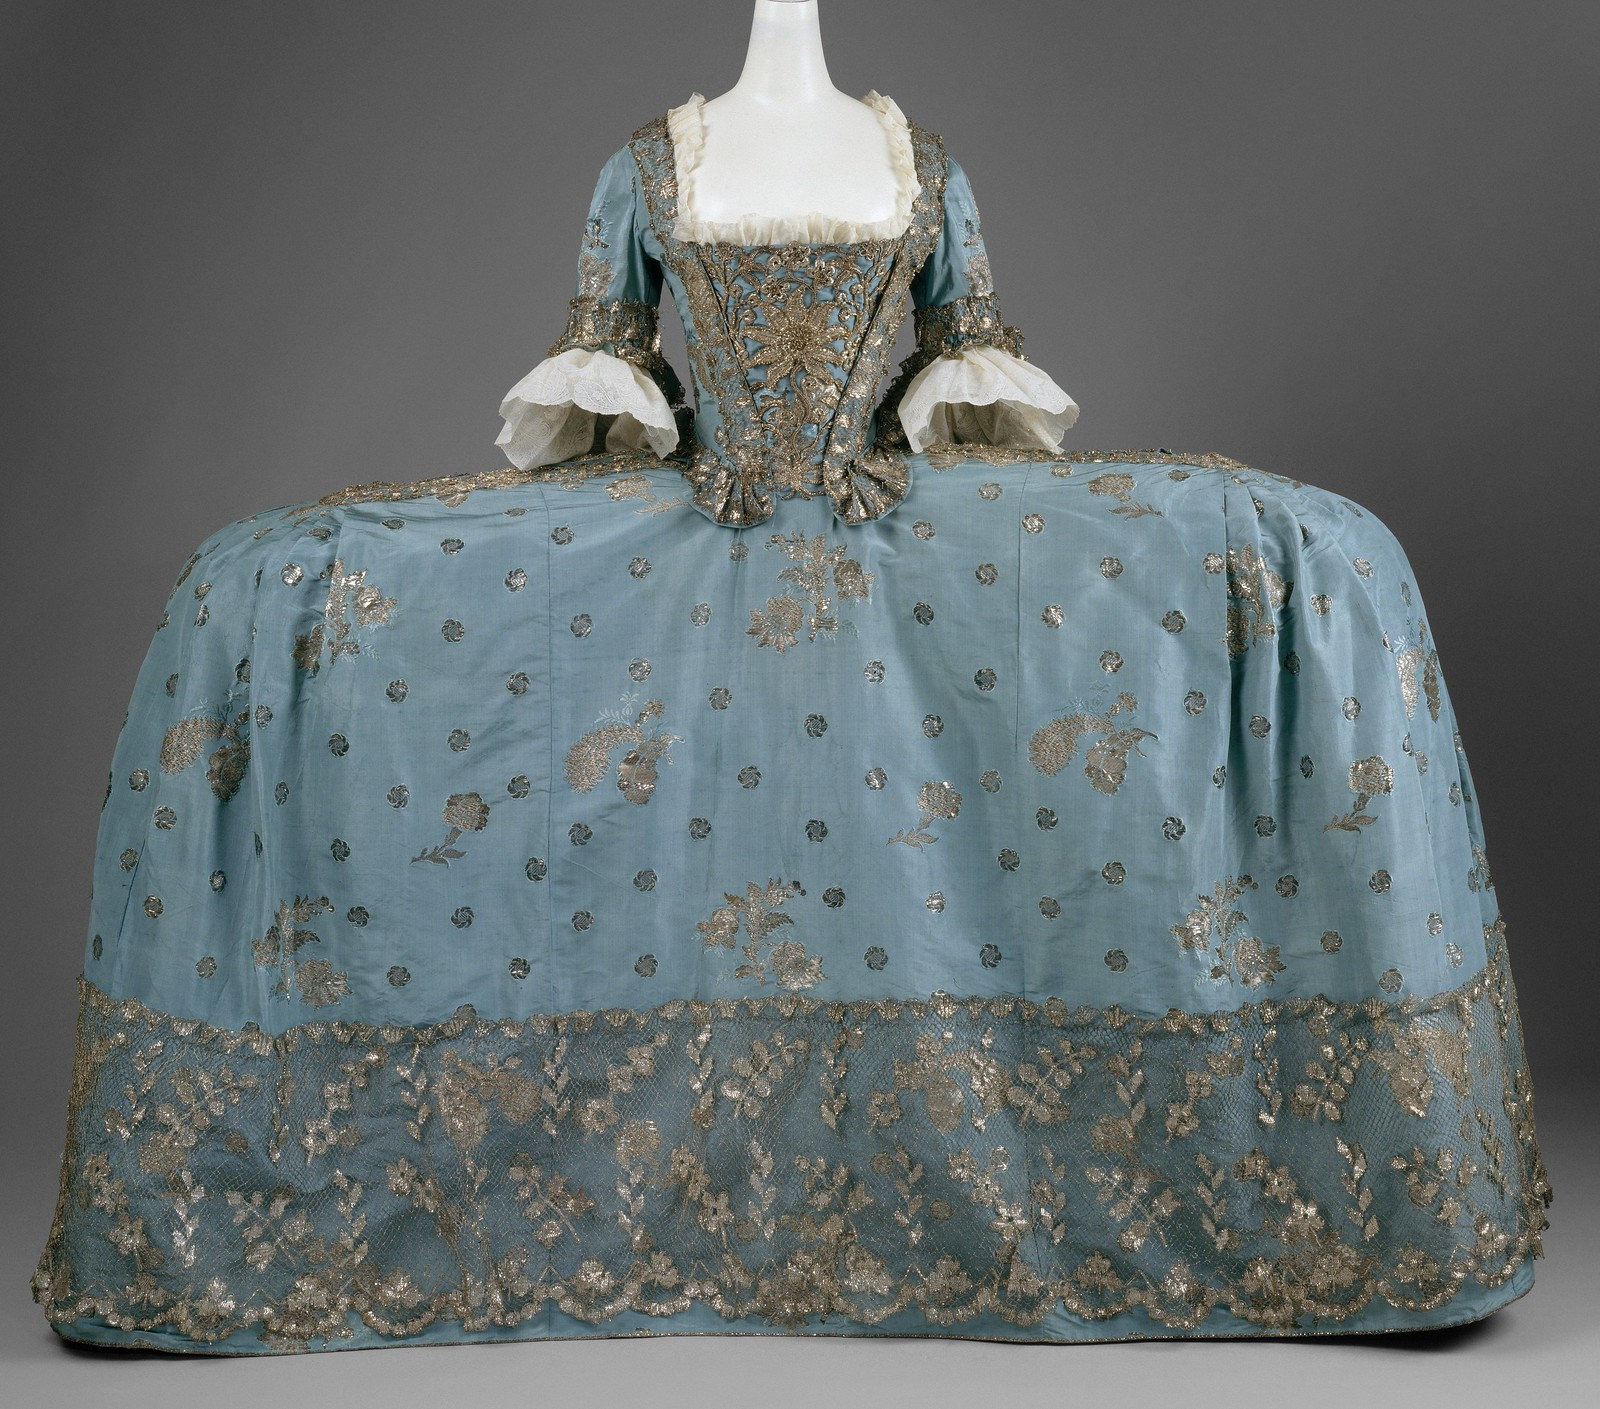 1750, British. Credit Metropolitan Museum of Art.